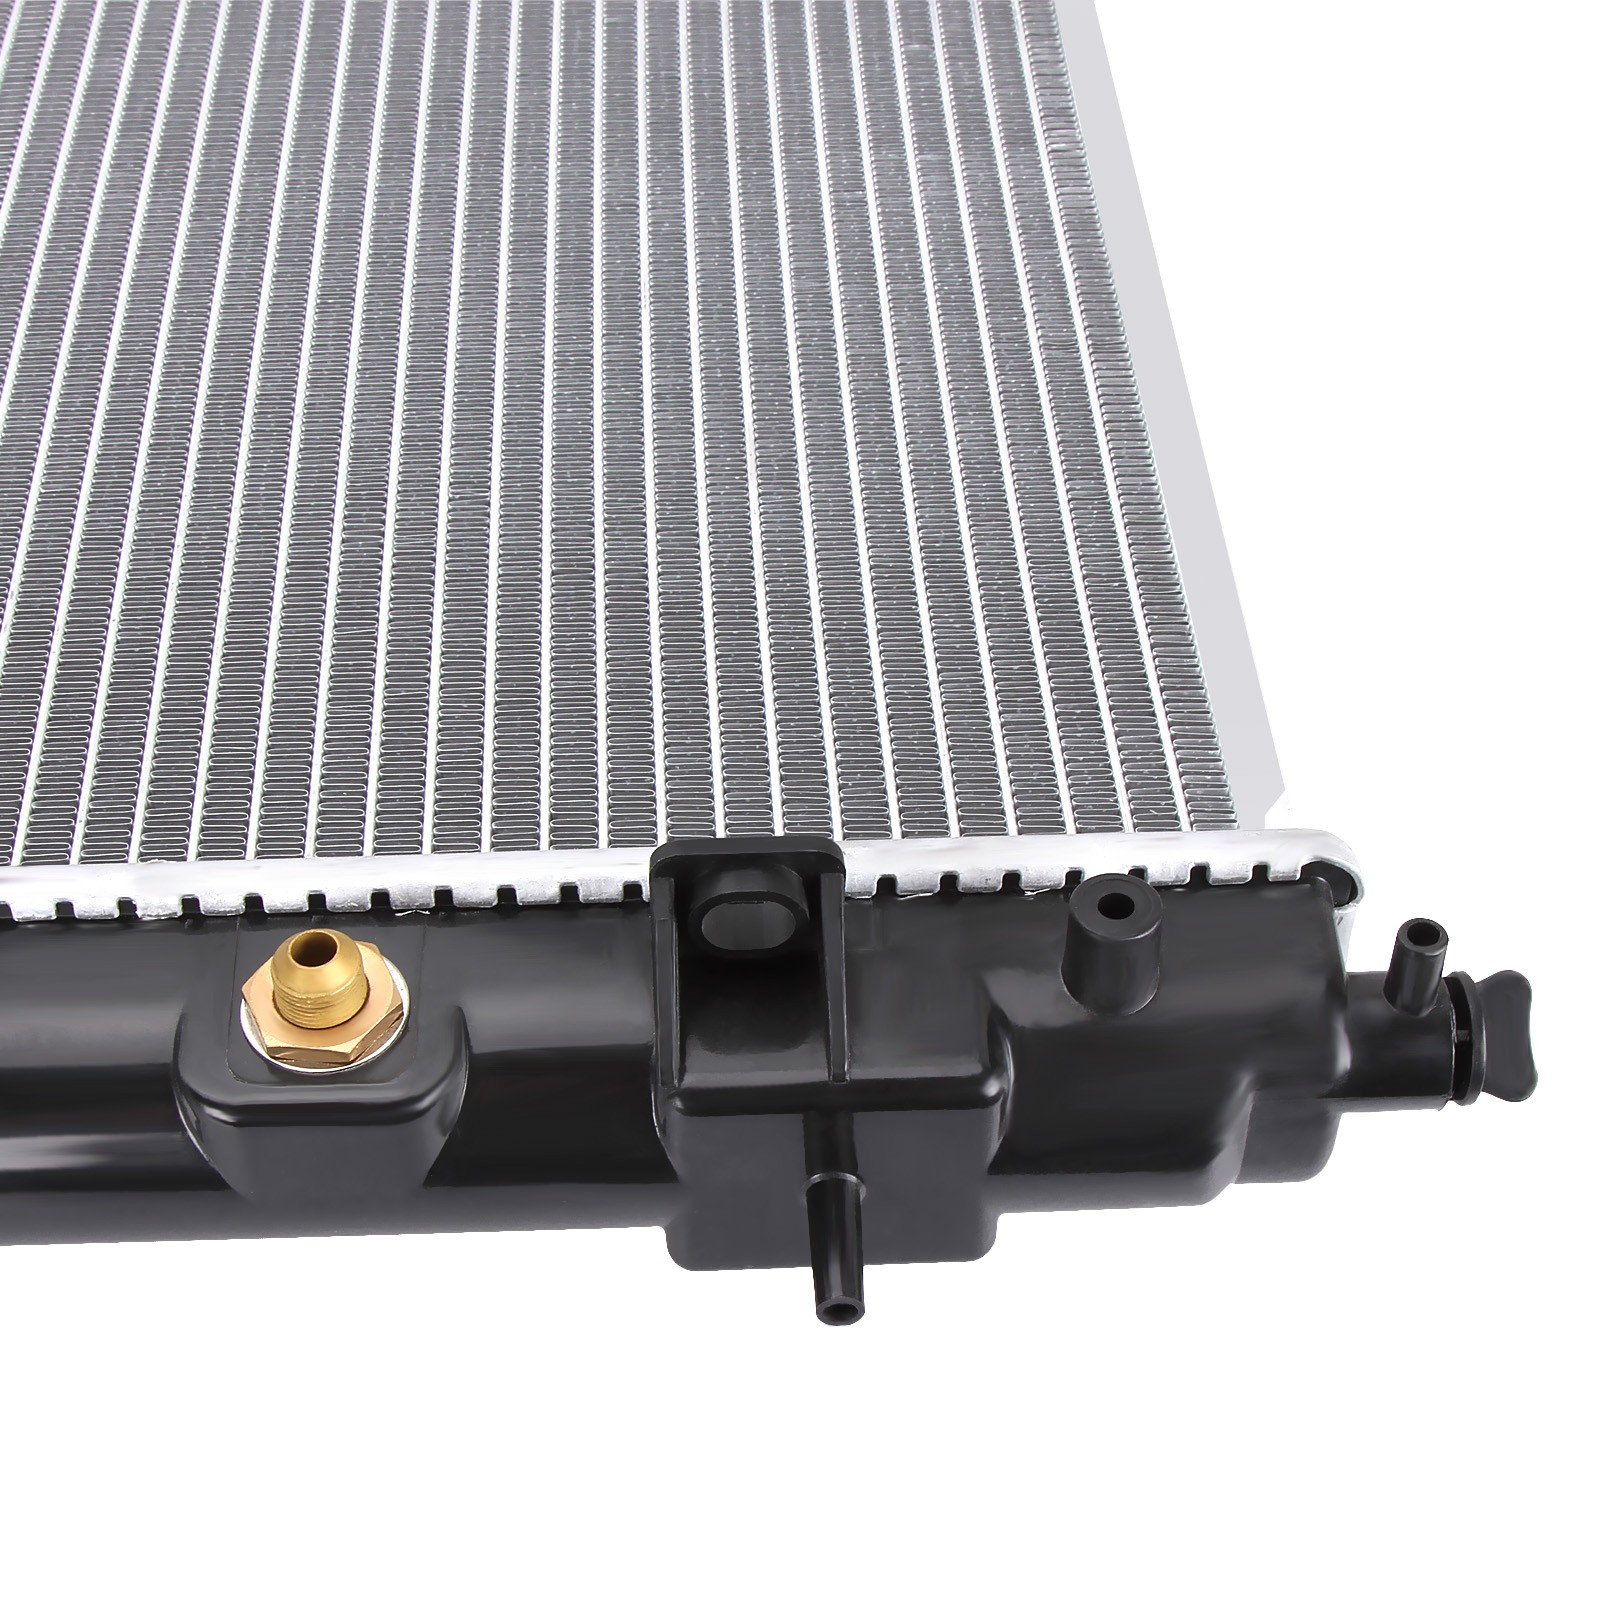 Dromedary-High-quality Subaru Outback Radiator | Premium Radiator For Subaru Forester-5